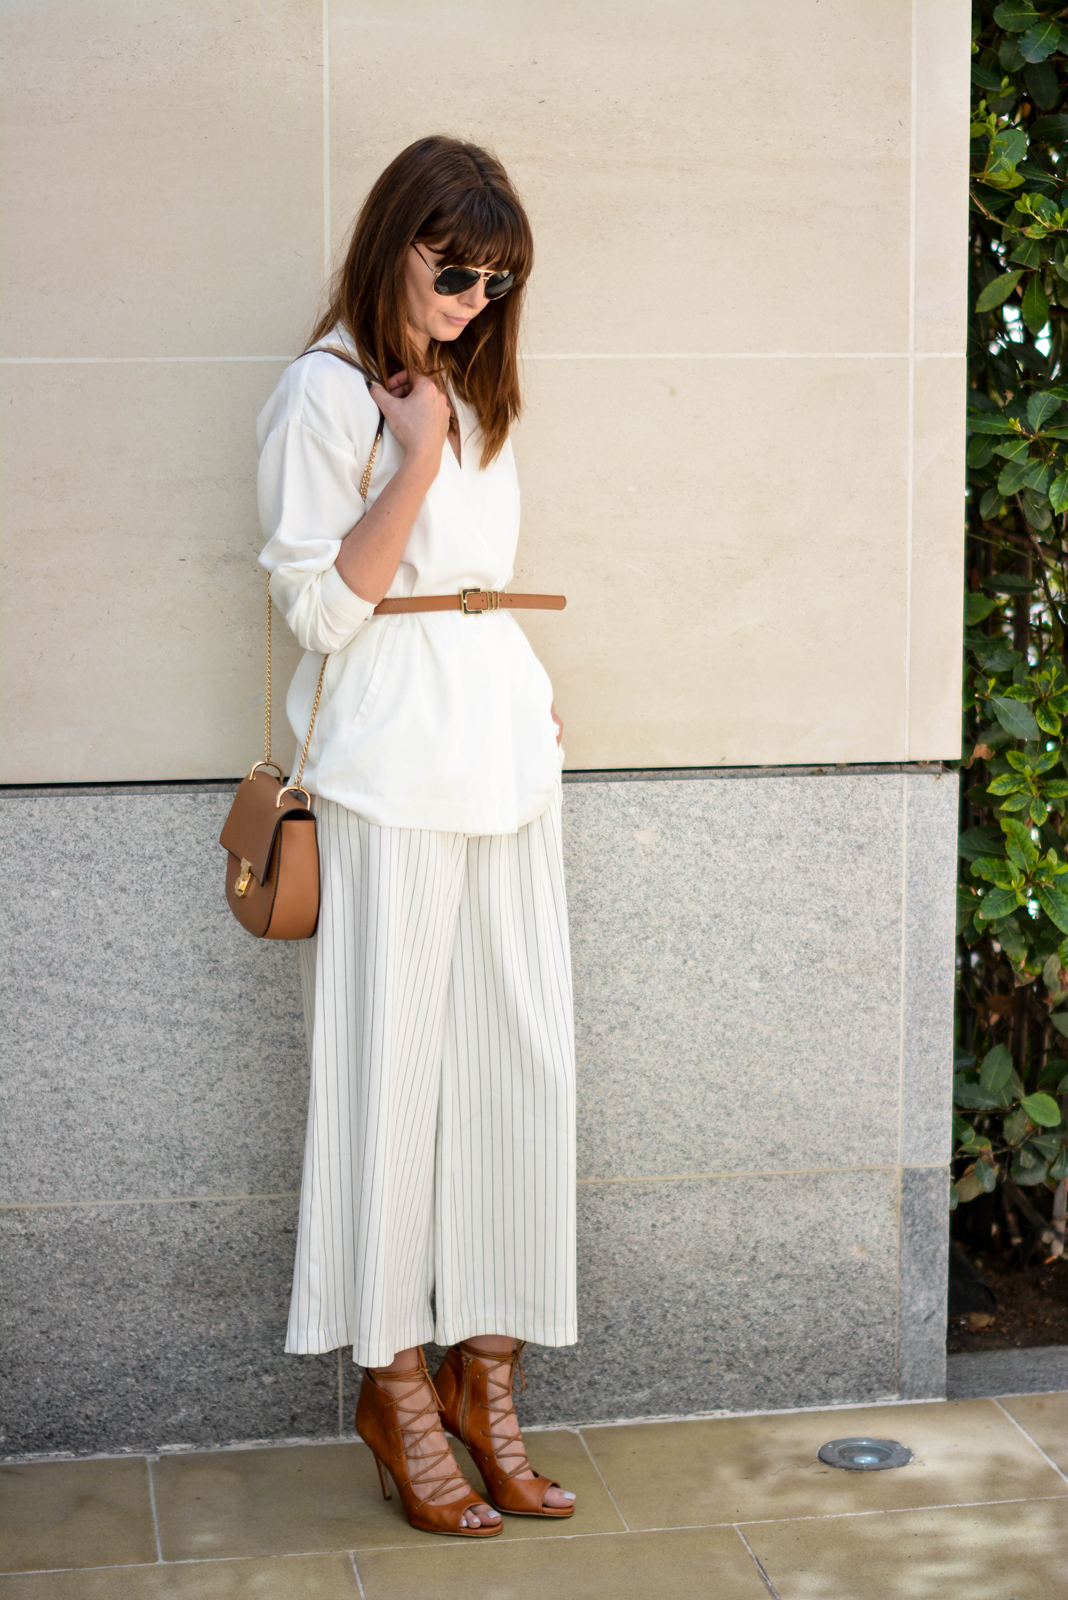 EJSTYLE - Emma Hill wearing Gestuz white wrap jacket, tan skinny waist belt, Finders Keepers white pinstripe wide leg culottes, Tan Chloe 'drew' dupe bag, tan lace up heels, summer whites outfit